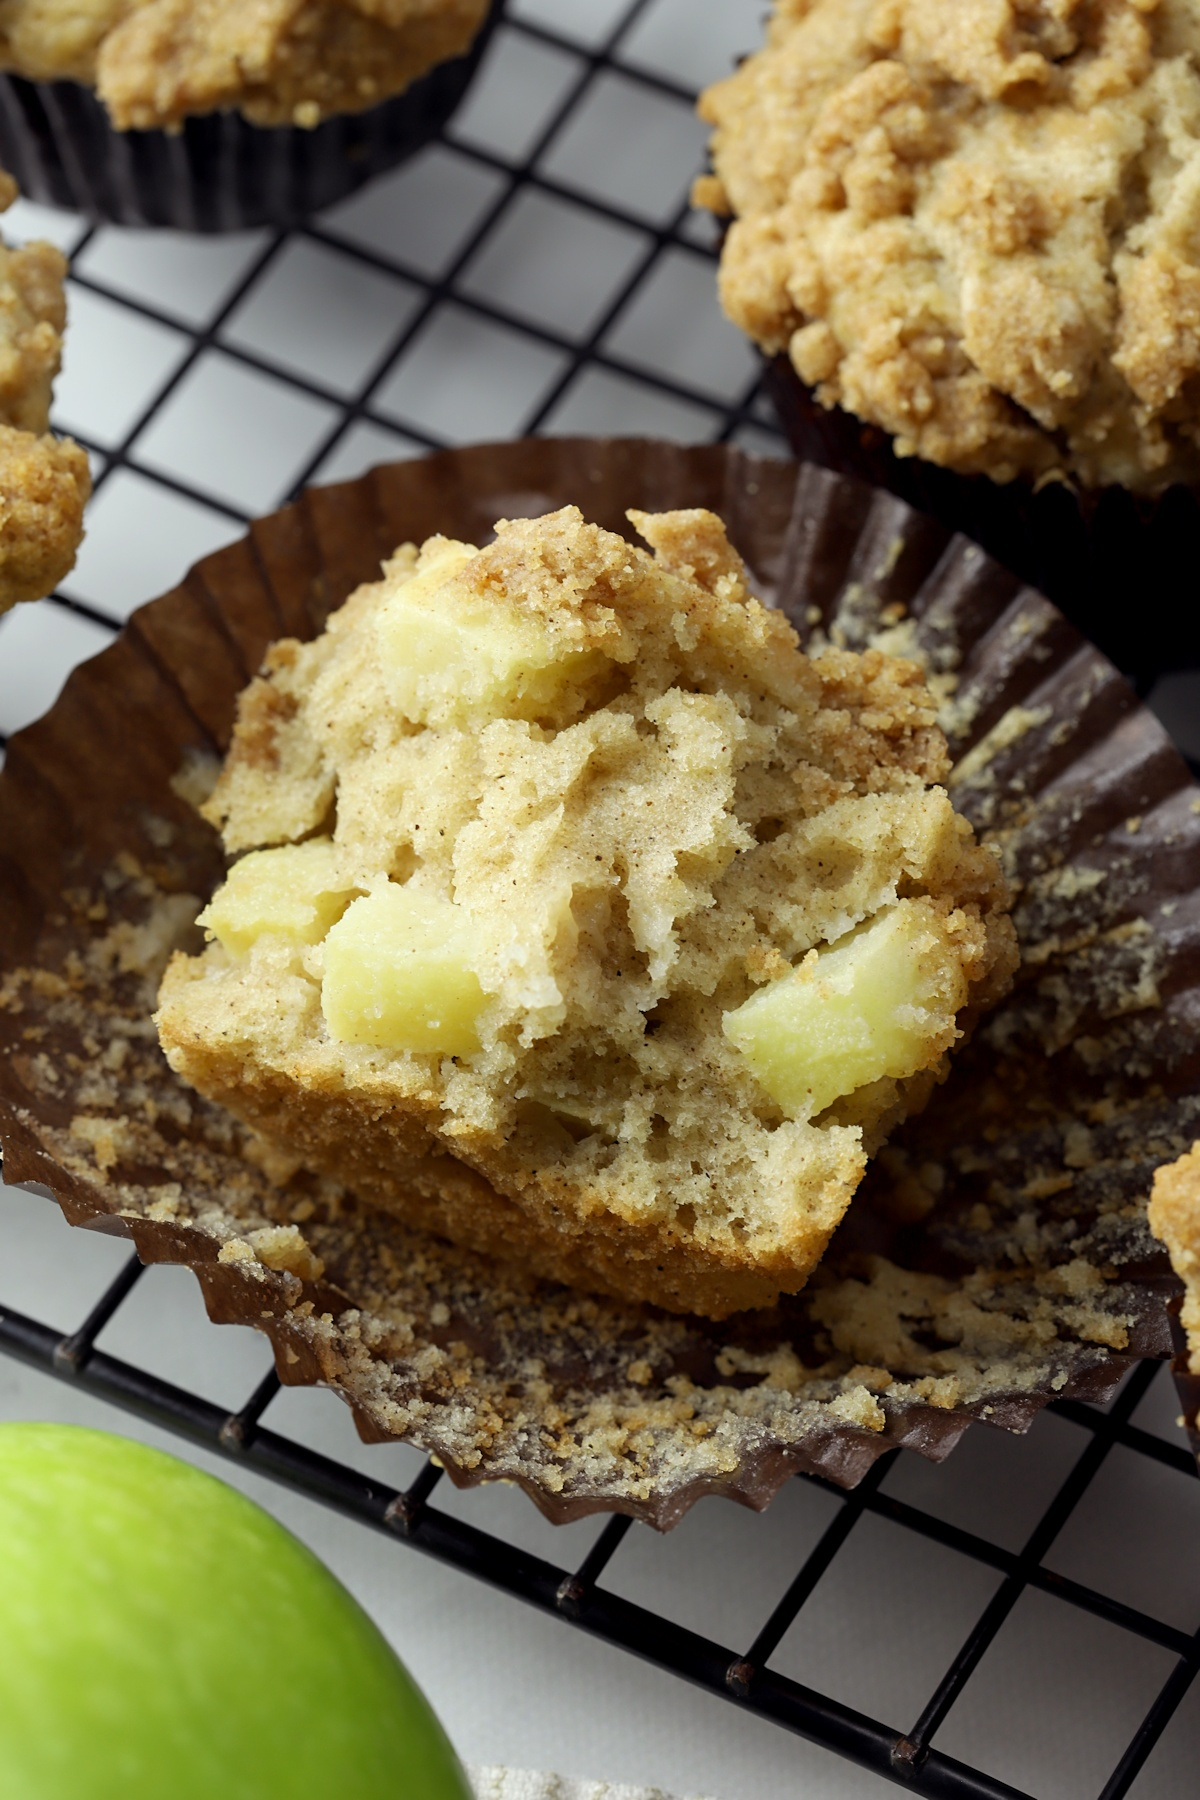 A muffin torn in half to show apple pieces.